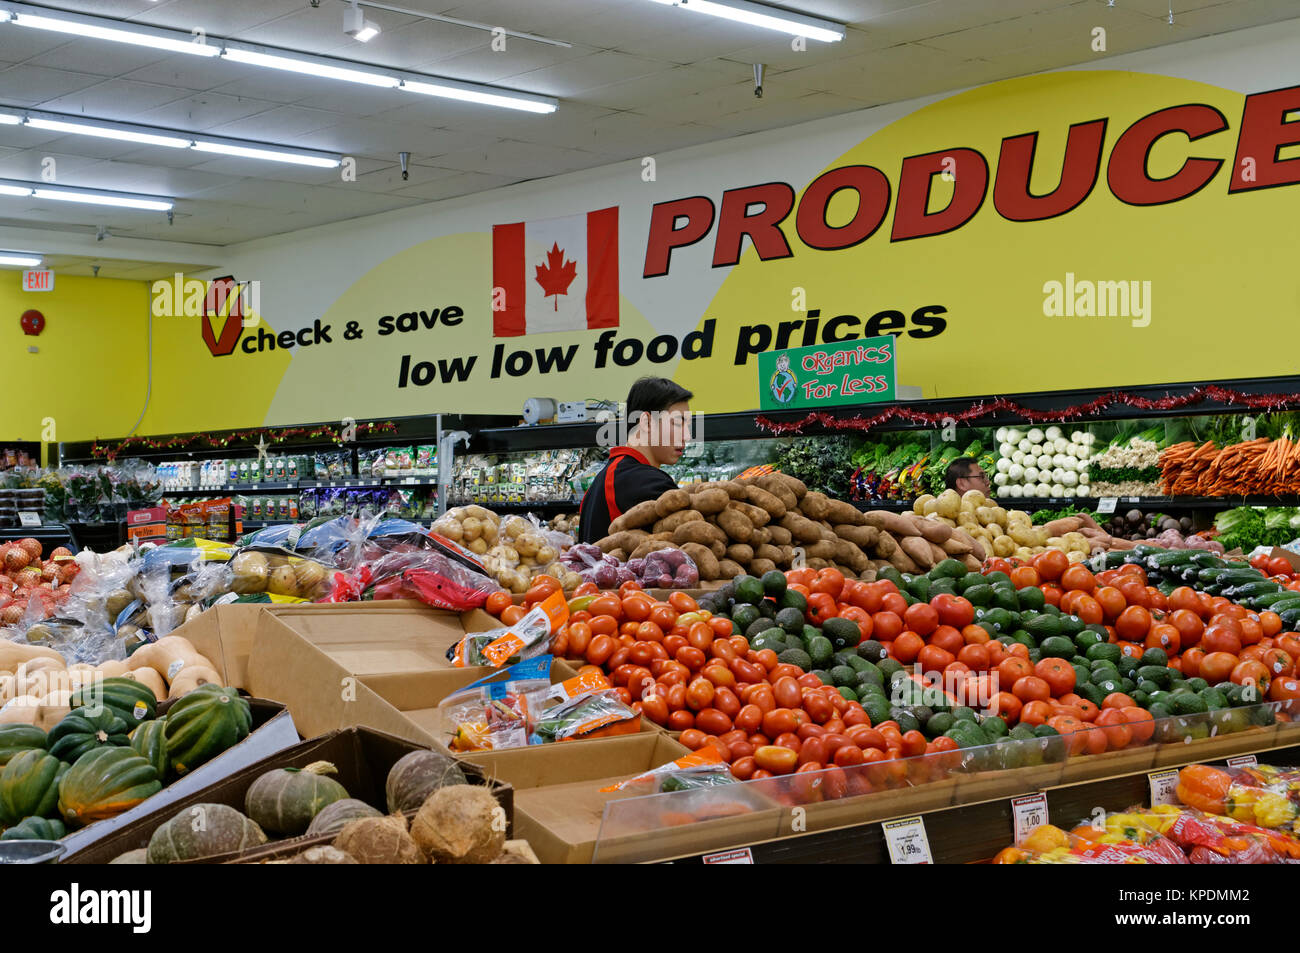 Grocery clerk in the Produce department of Buy Low Foods discount grocery store, Vancouver, BC, Canada - Stock Image